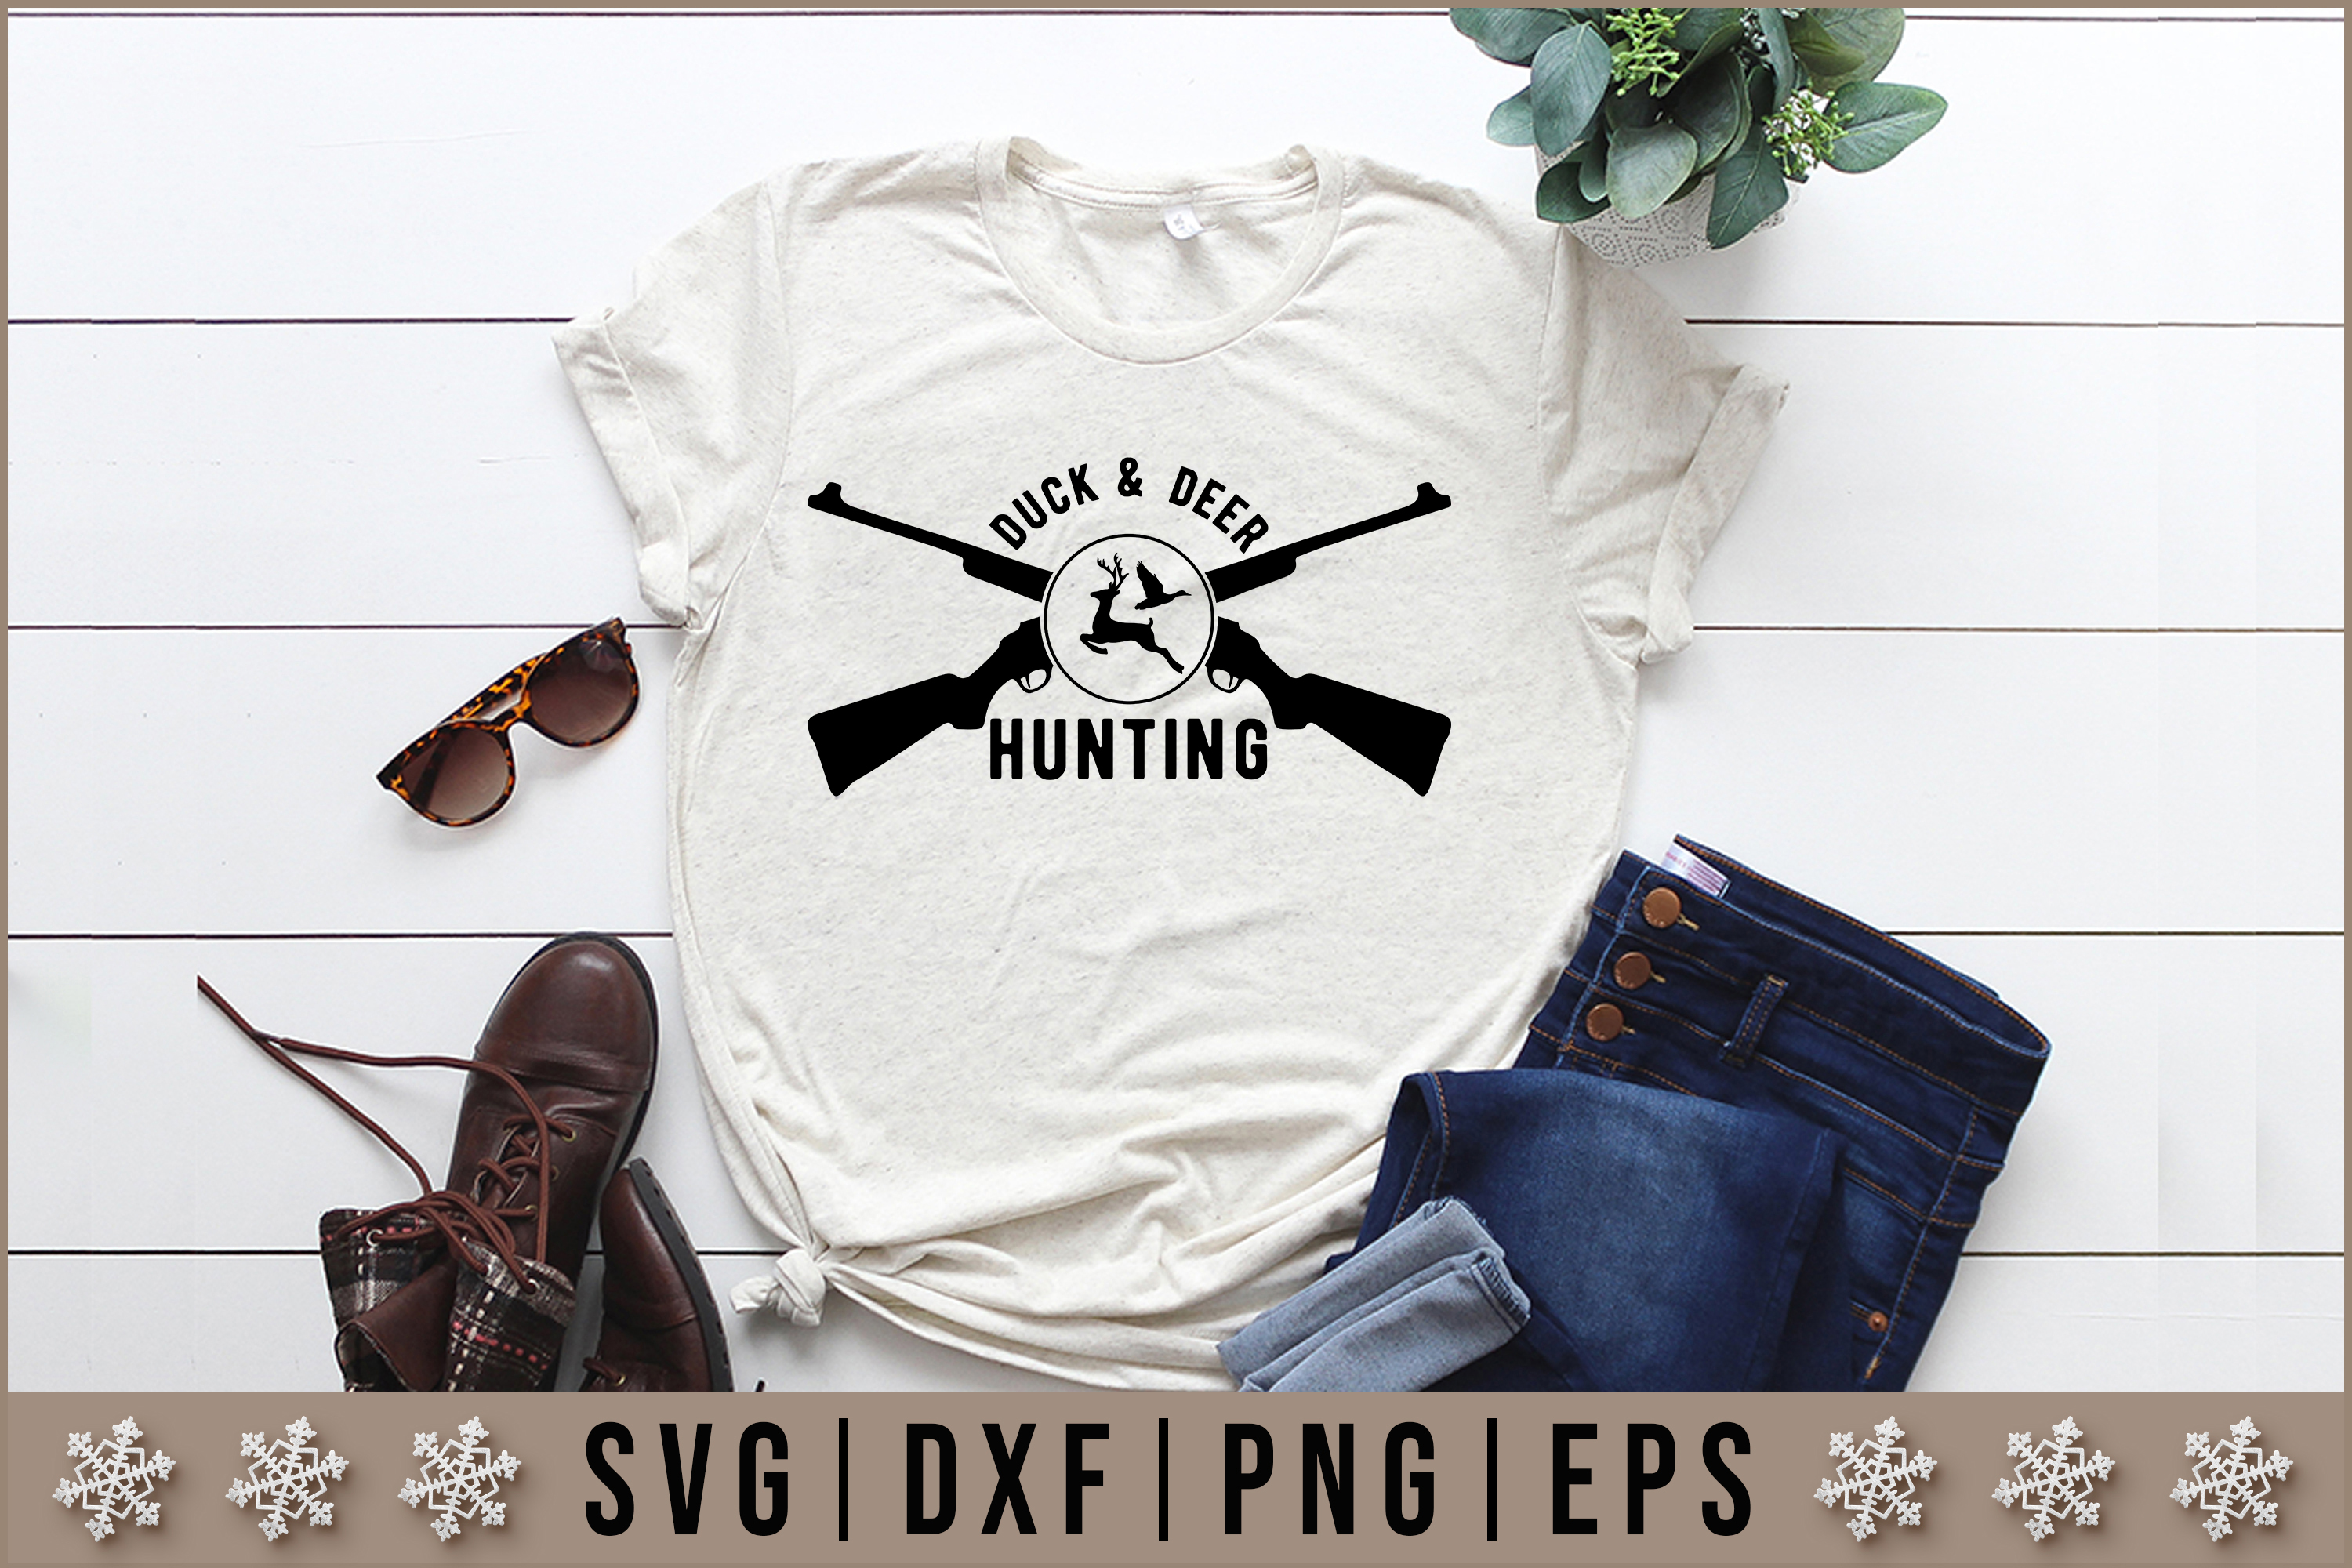 Duck Deer Hunting Svg Graphic By Artistcreativedesign